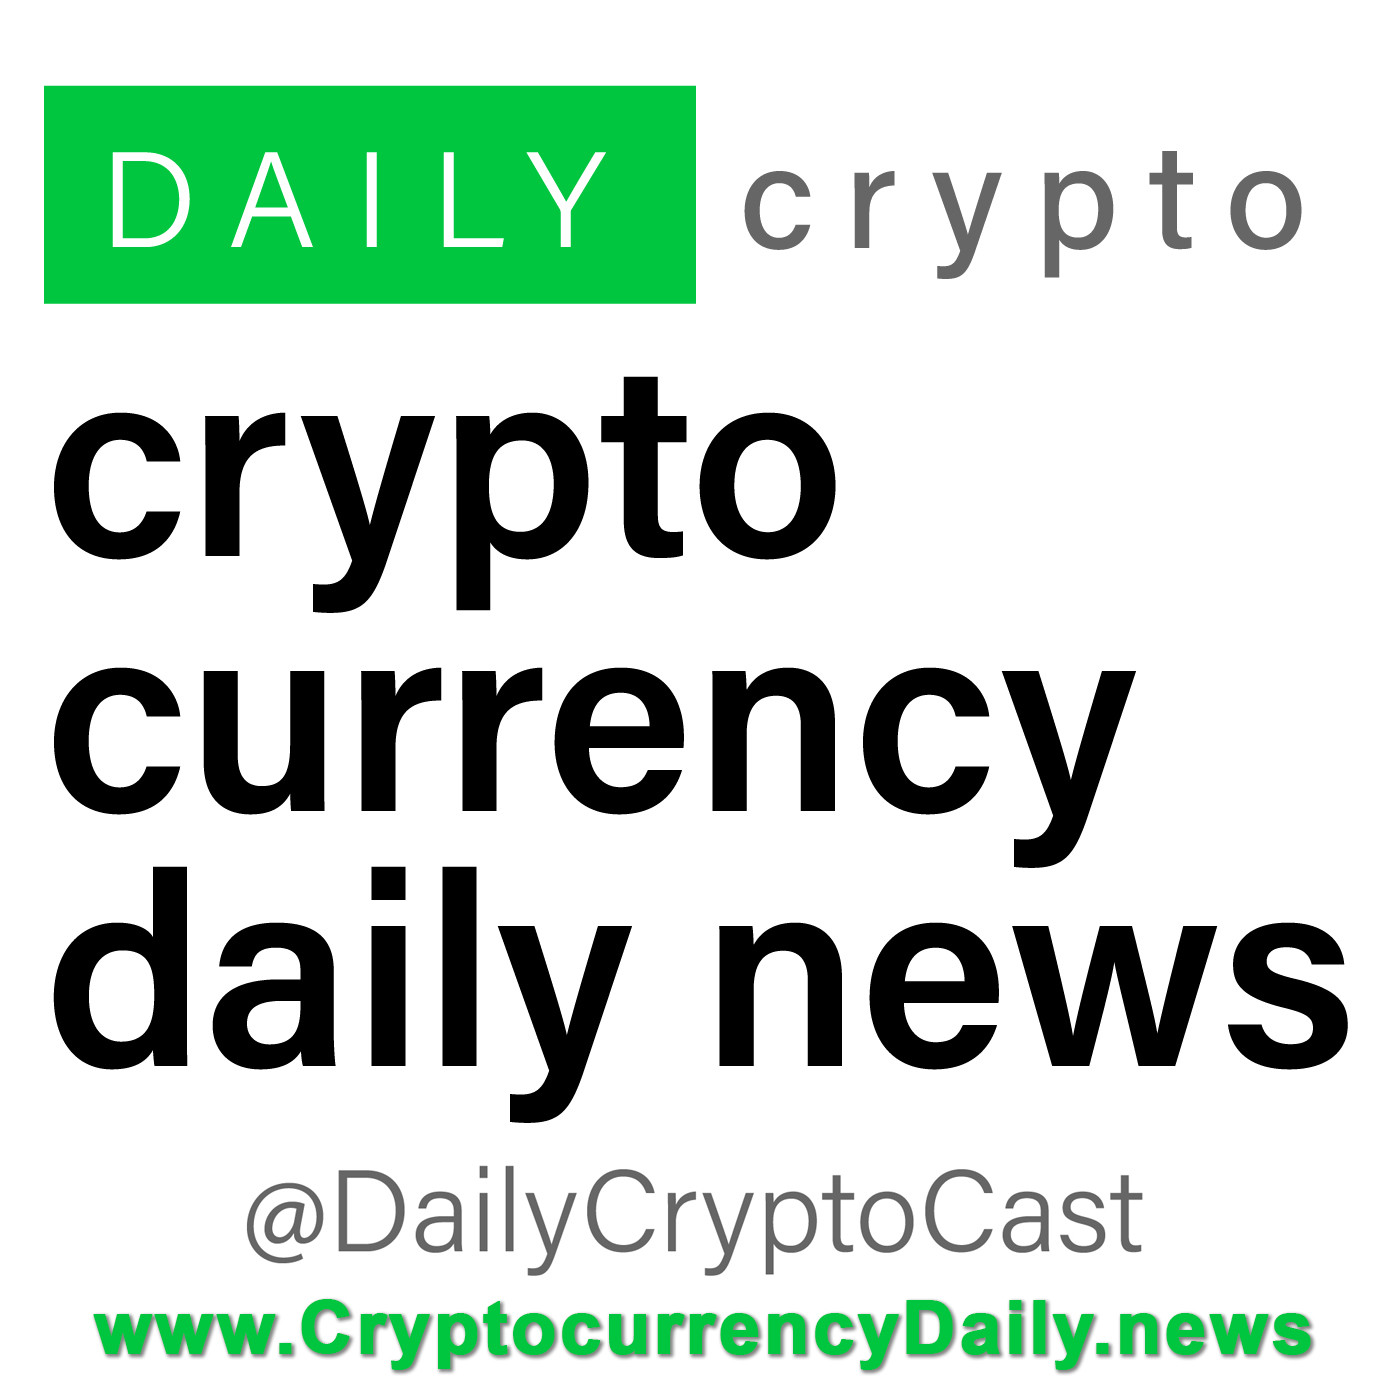 3/26/18 Crypto News - Ontology, Mithrill, Ridrr